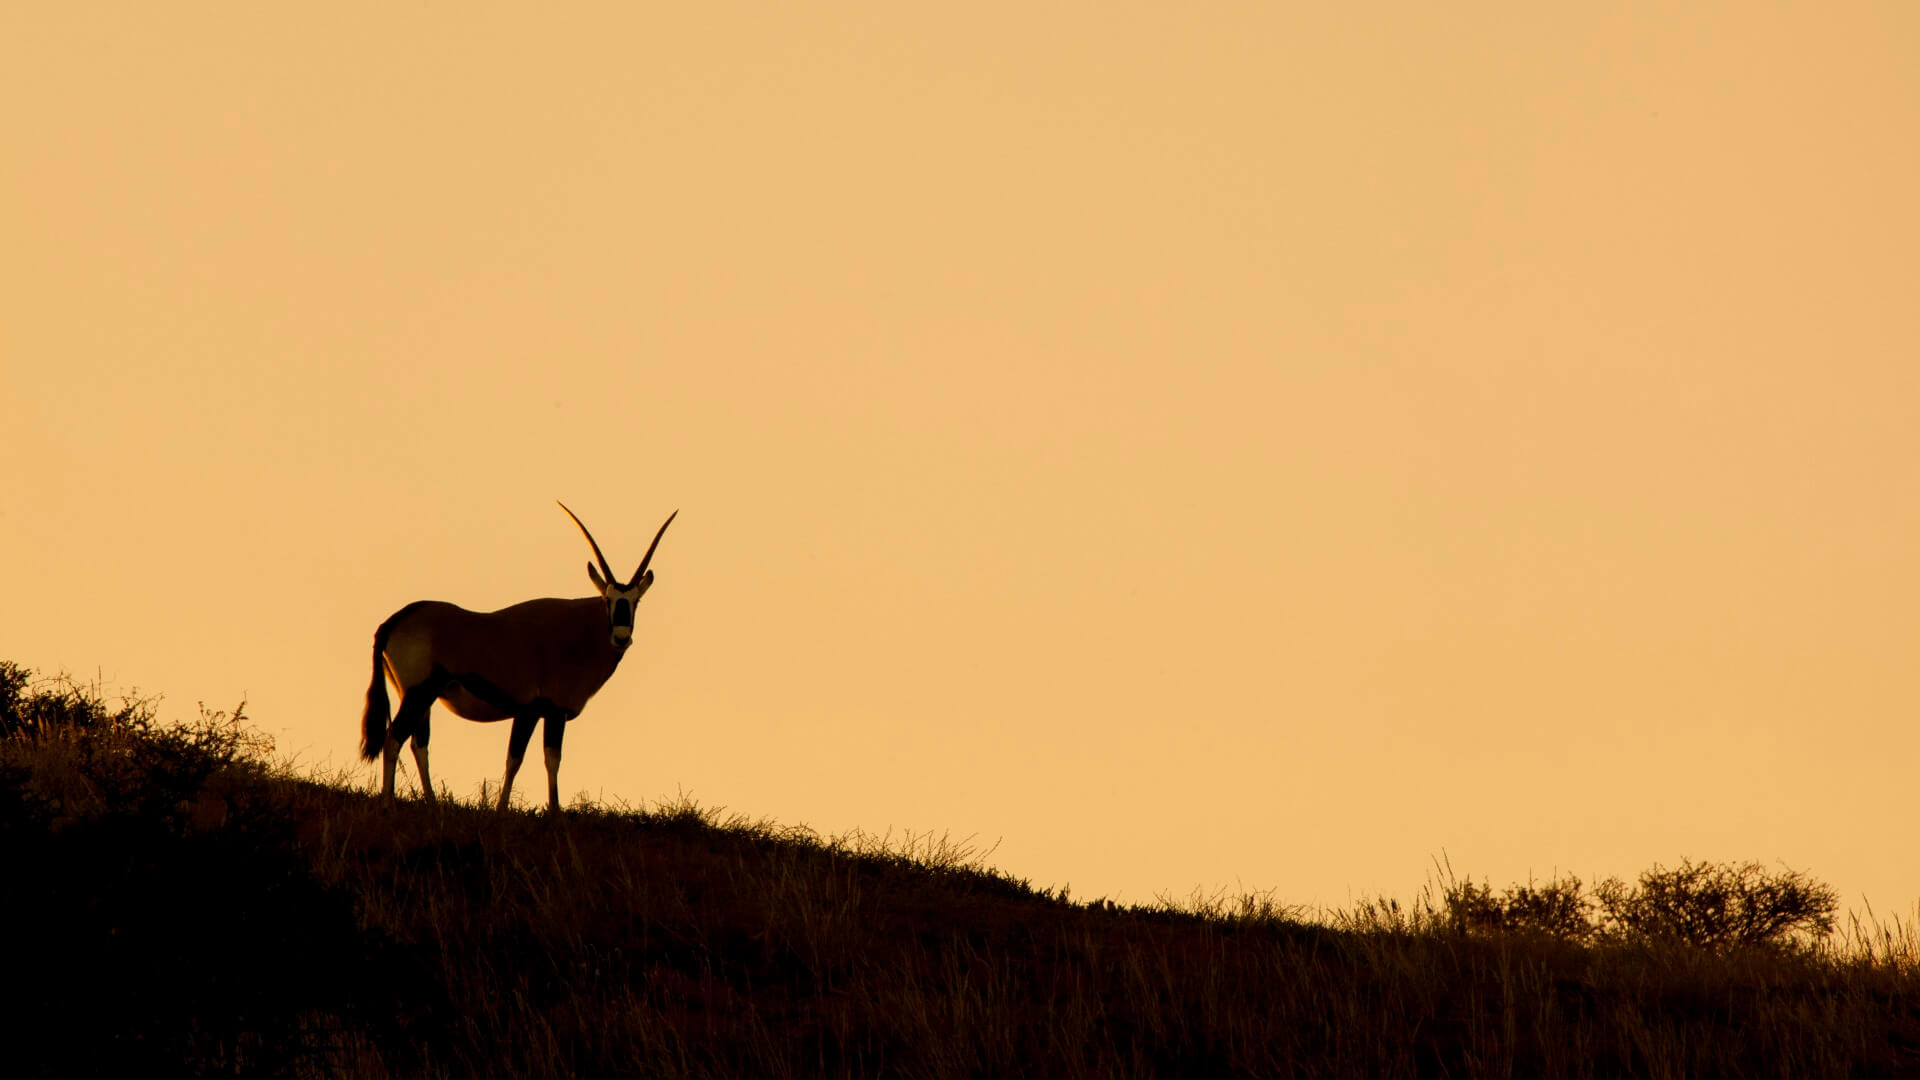 Oryx antelope durign sunset, Kalahari, South Africa